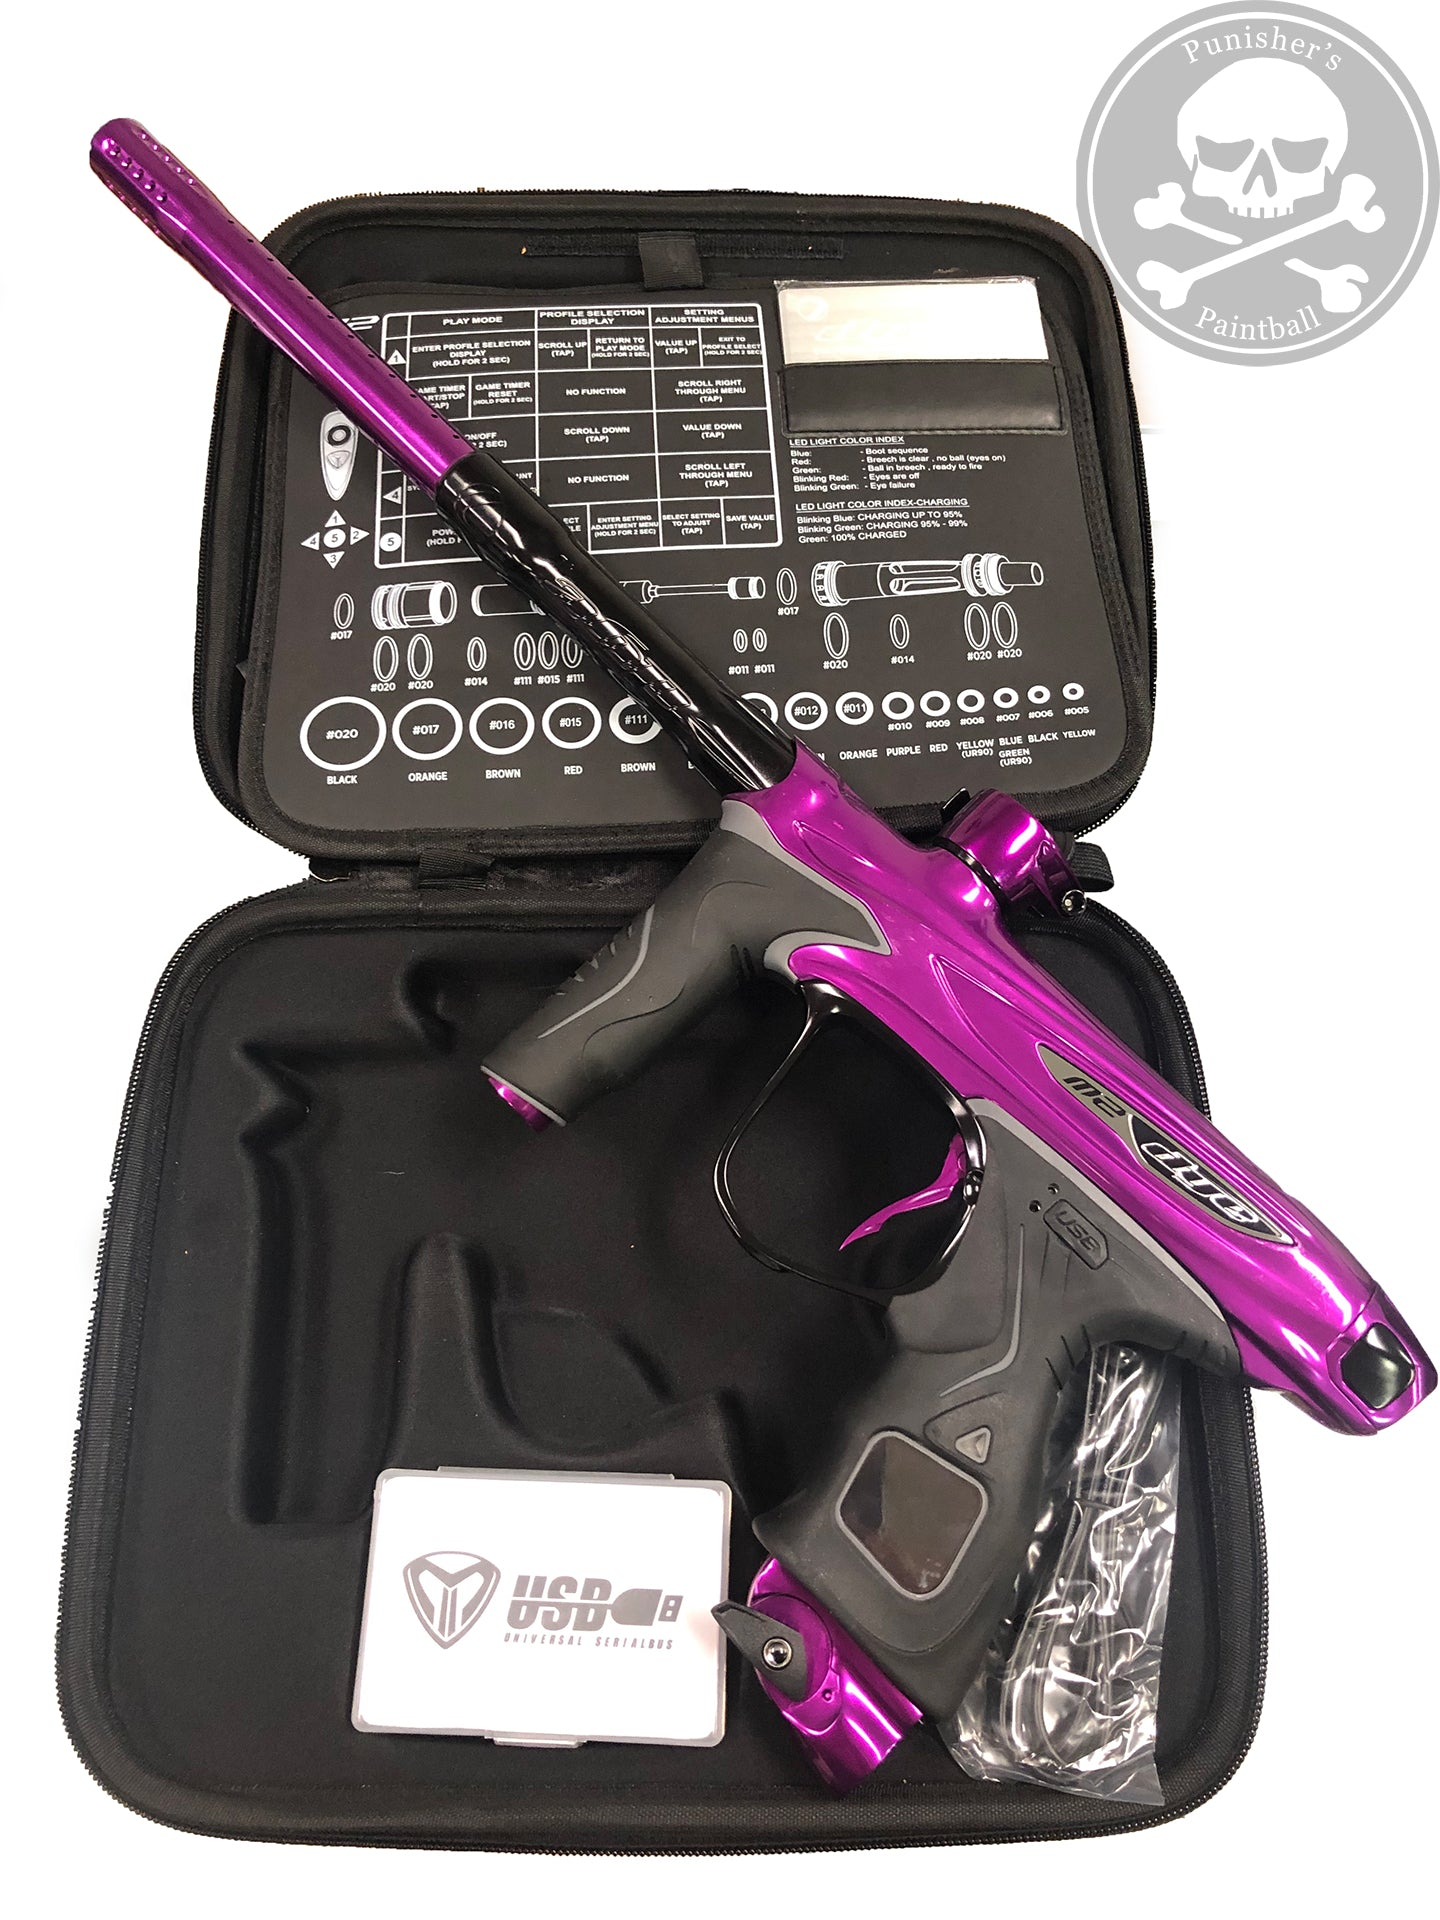 Used Dye M2 MOSAir Paintball Gun - Purple